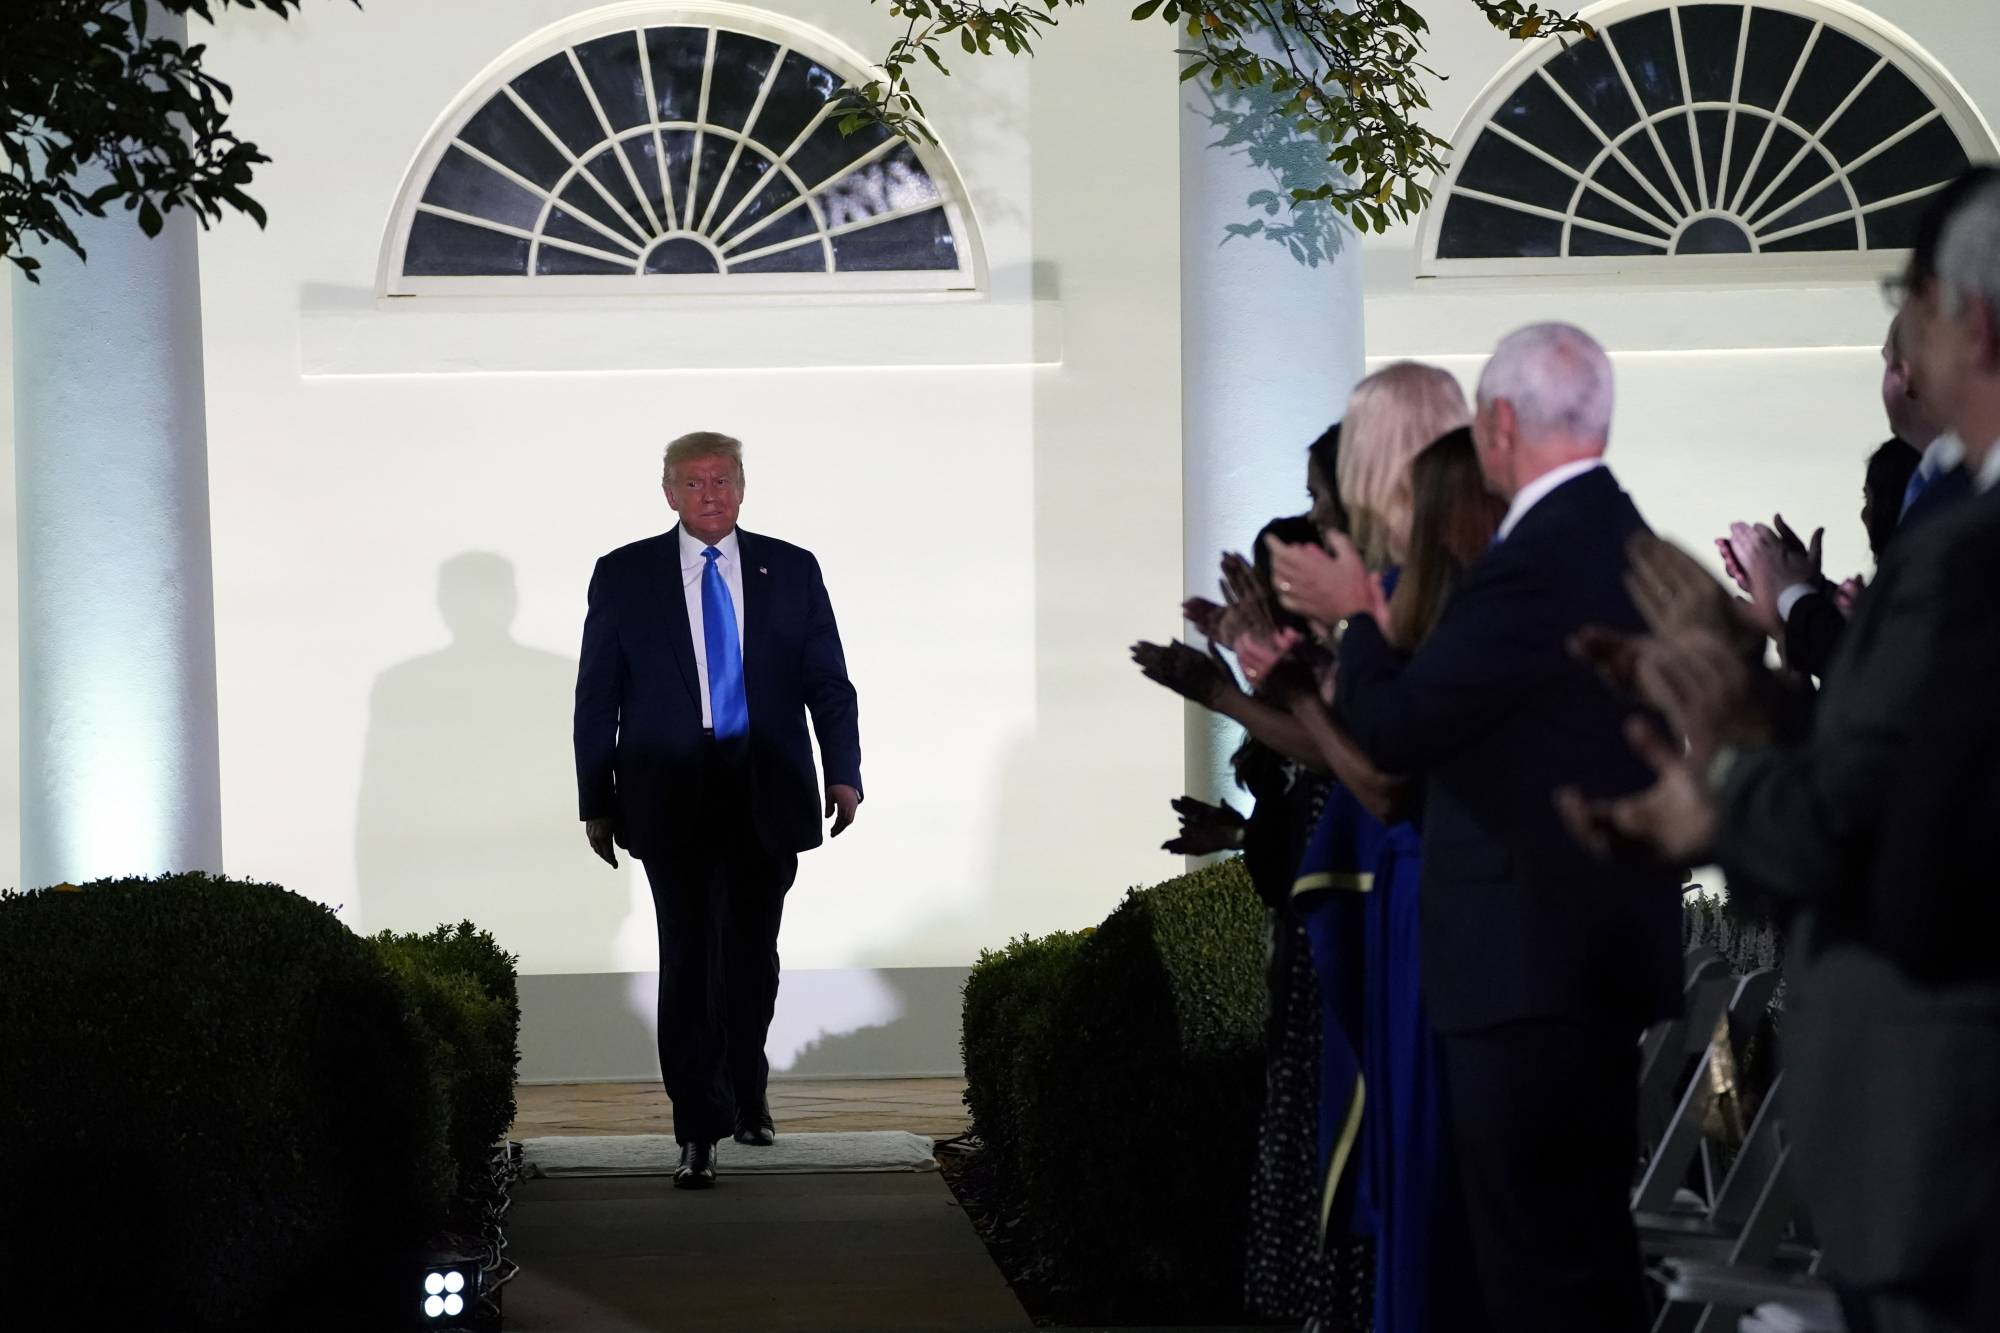 President Donald Trump arrives to listen to first lady Melania Trump speak during the 2020 Republican National Convention from the Rose Garden of the White House, Tuesday, Aug. 25, 2020, in Washington. (AP Photo/Evan Vucci)